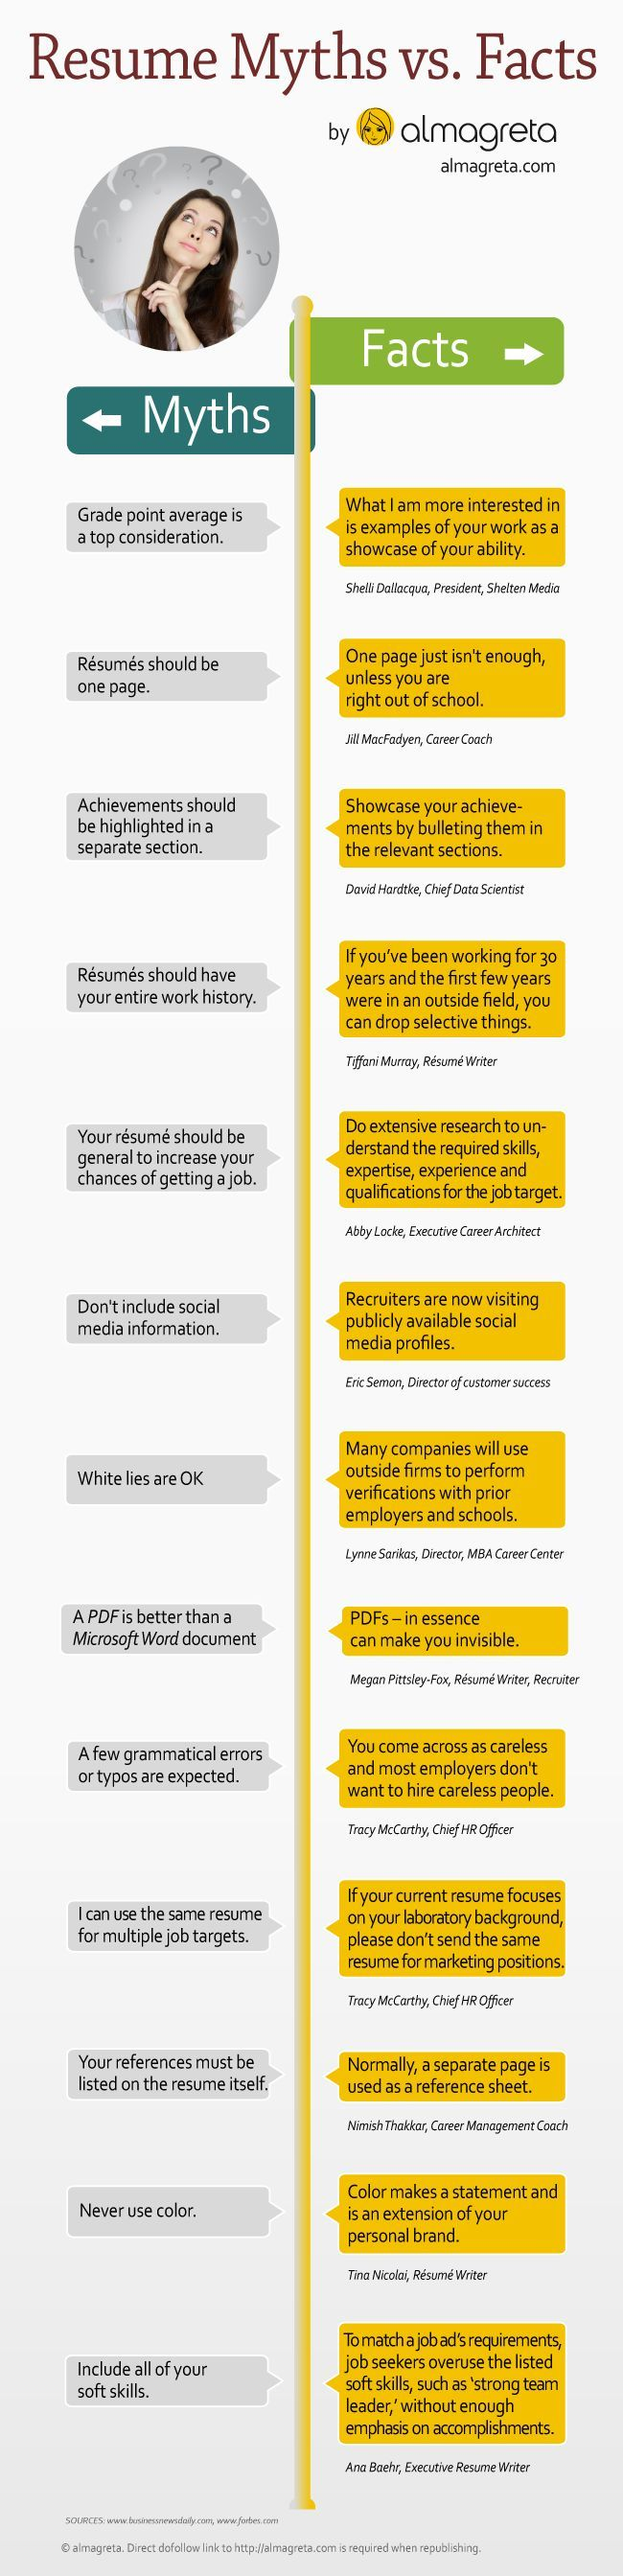 resume myths and facts tips from resume experts to get you hired resumetips - Best Resume Tips